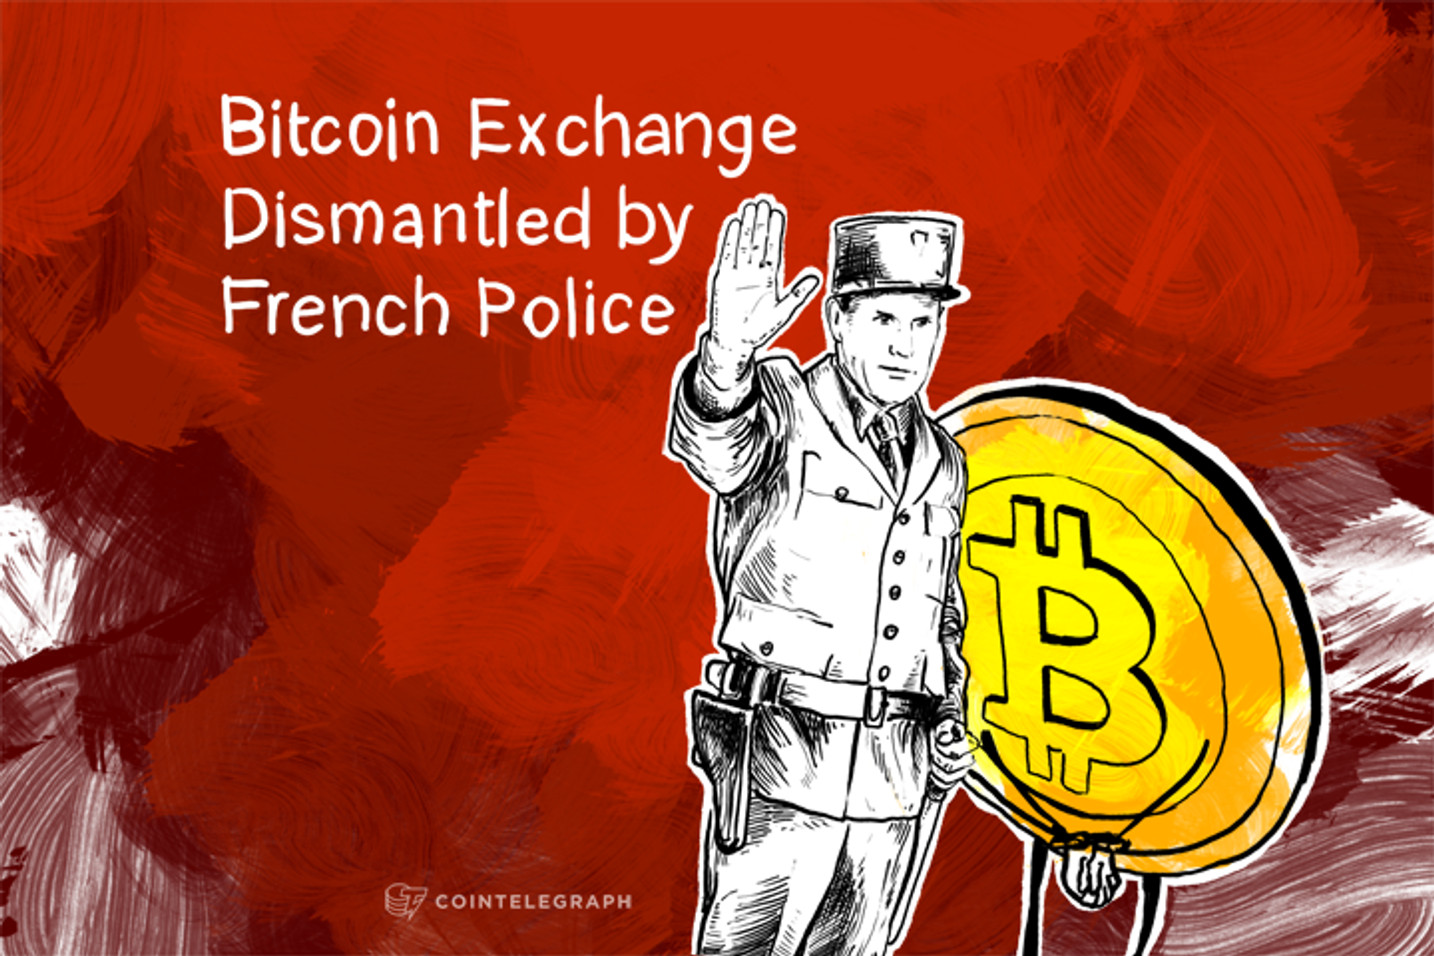 Bitcoin Exchange Dismantled by French Police